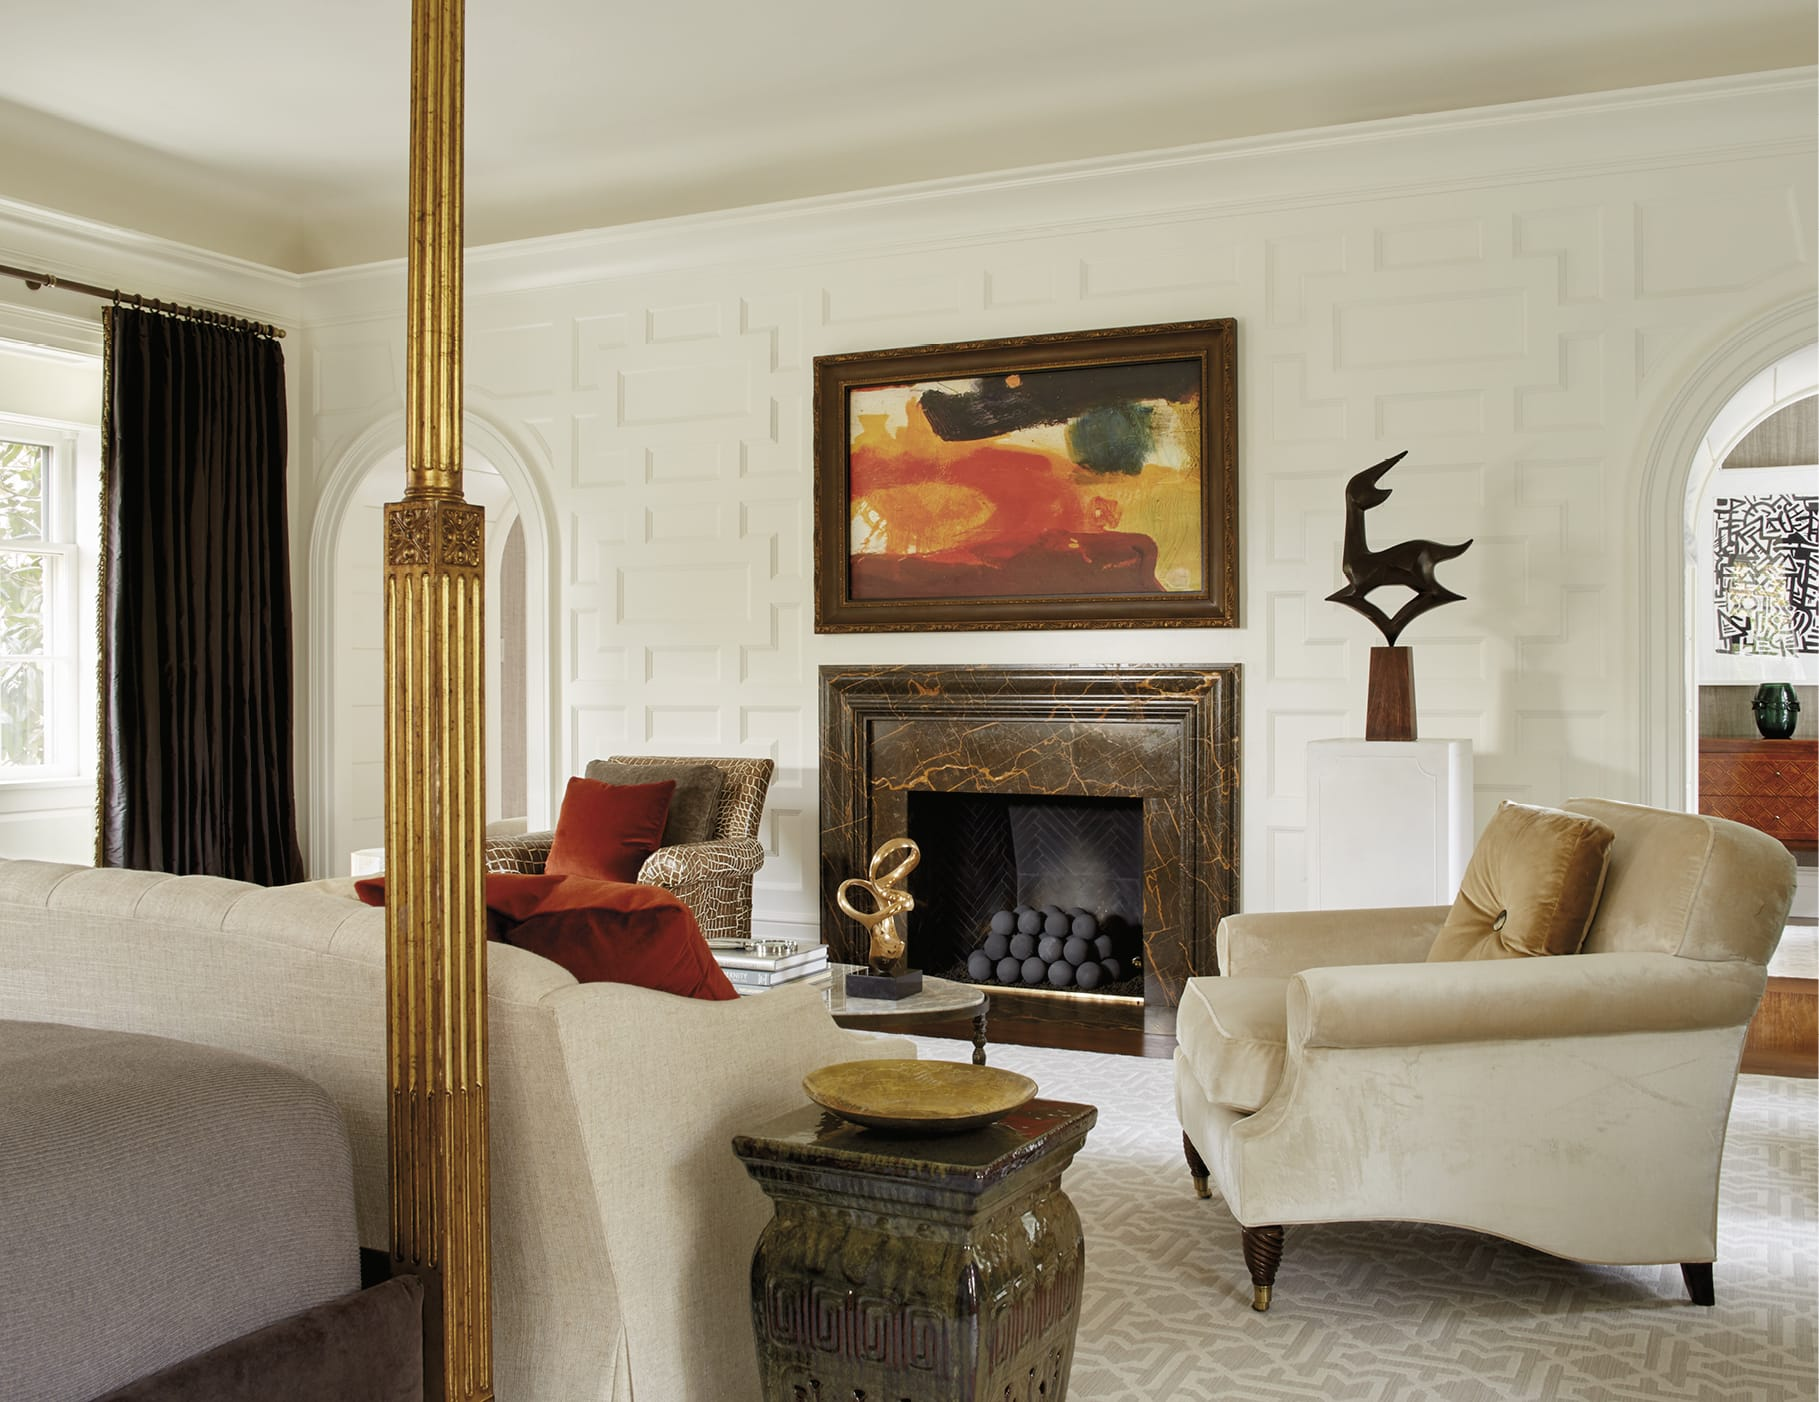 Bedroom seating area with a textured wall